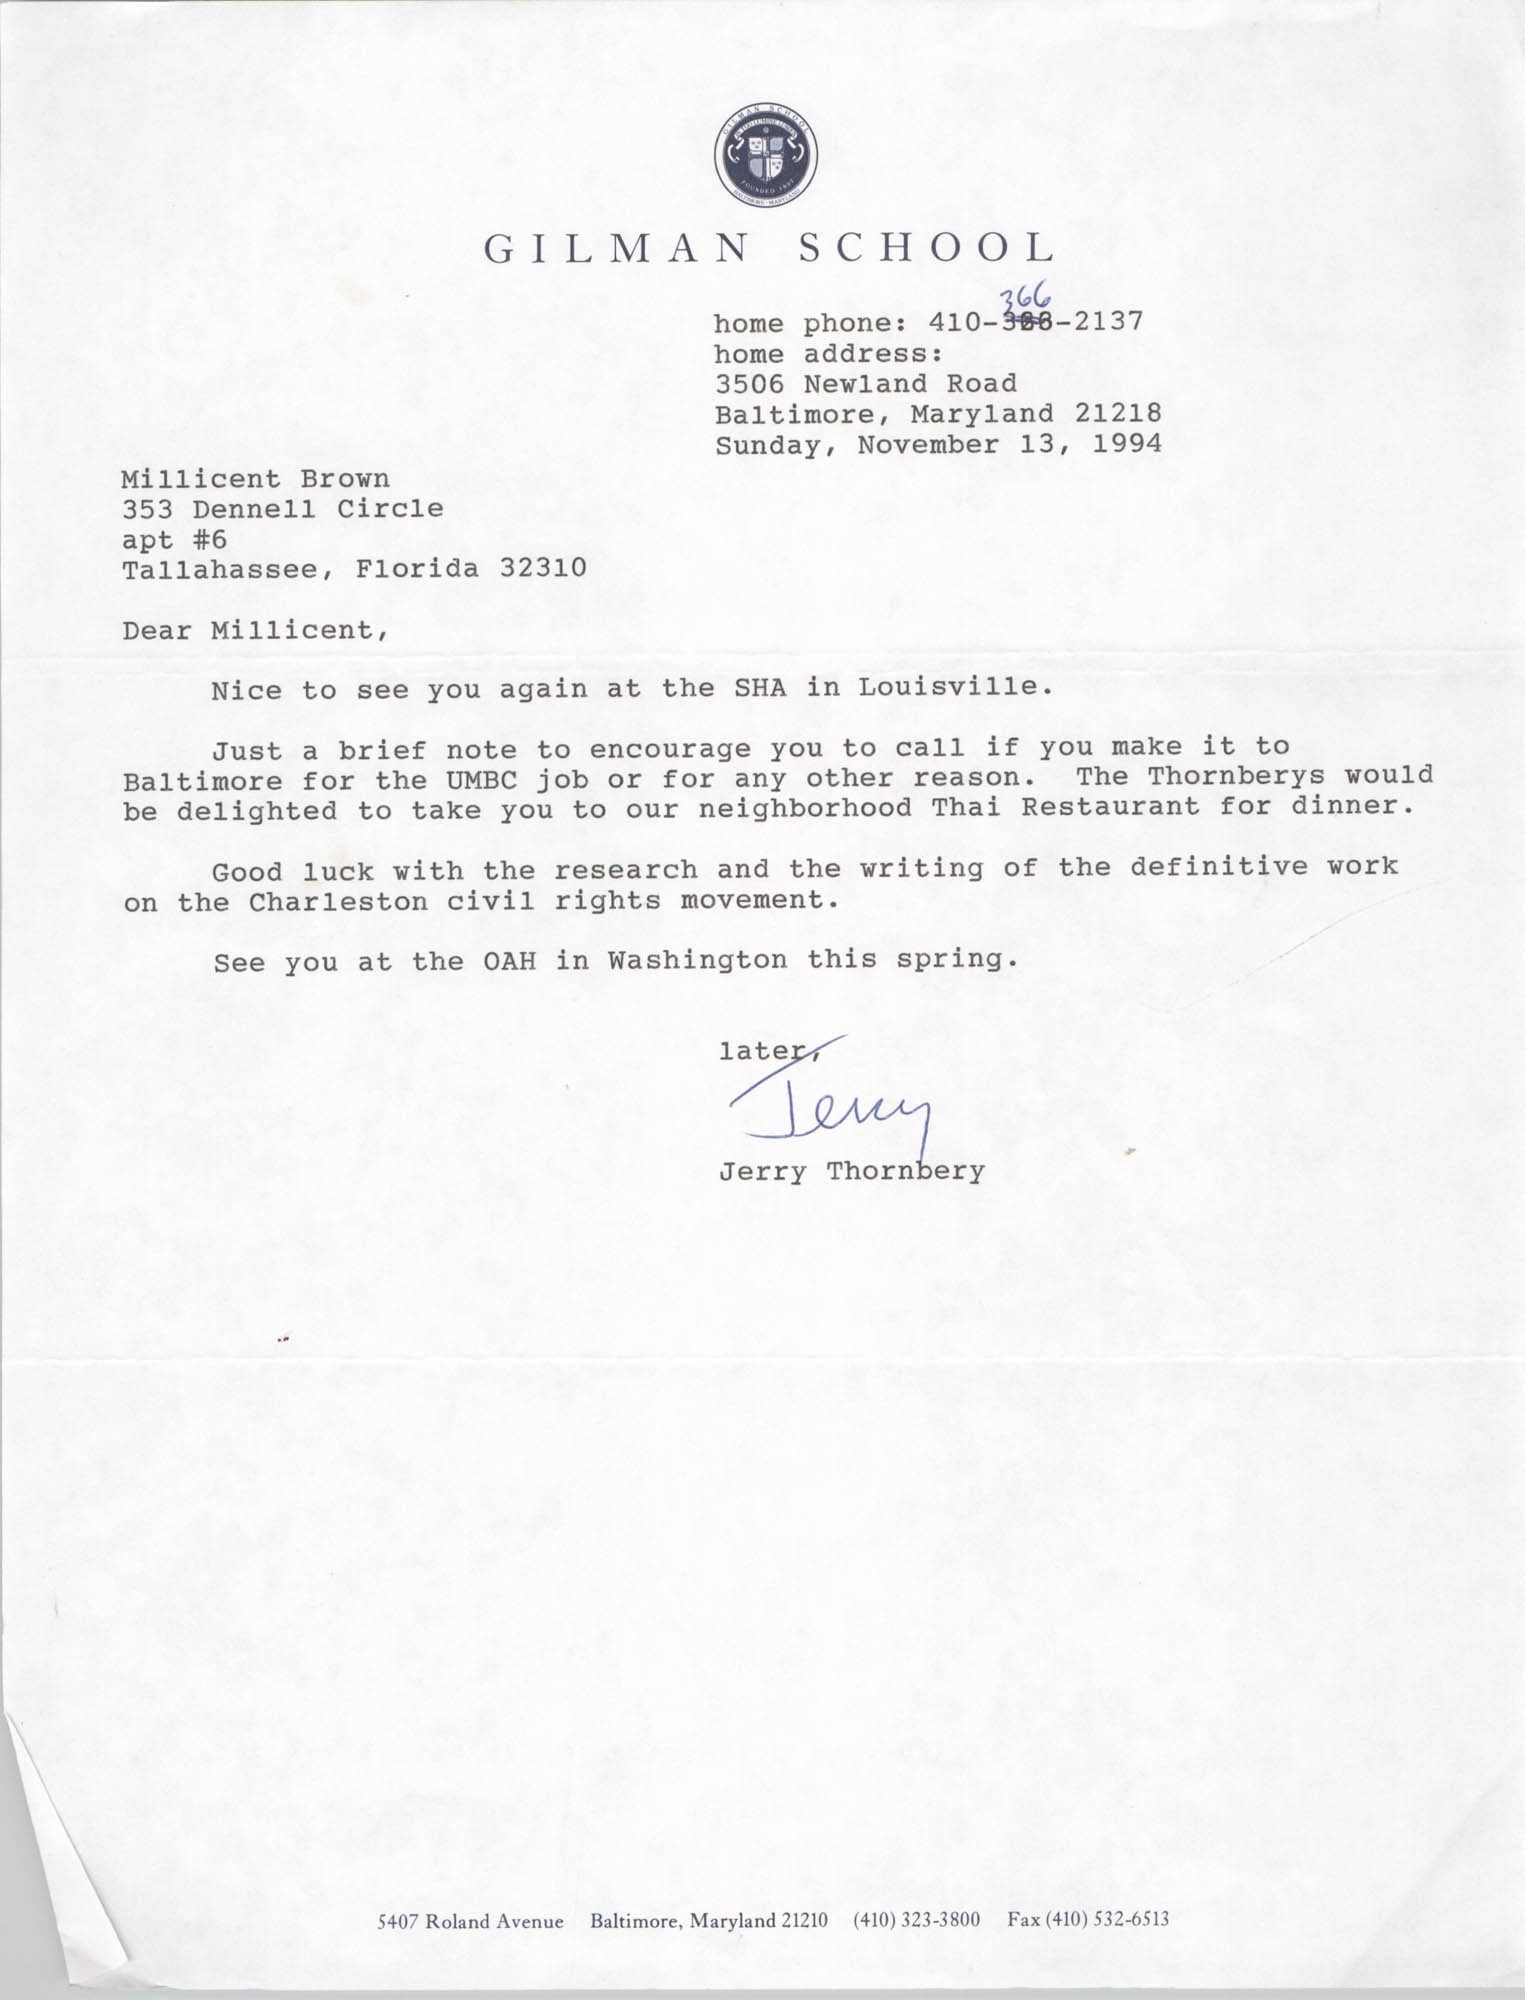 Letter from Jerry Thornberry to Millicent Brown, November 13, 1994